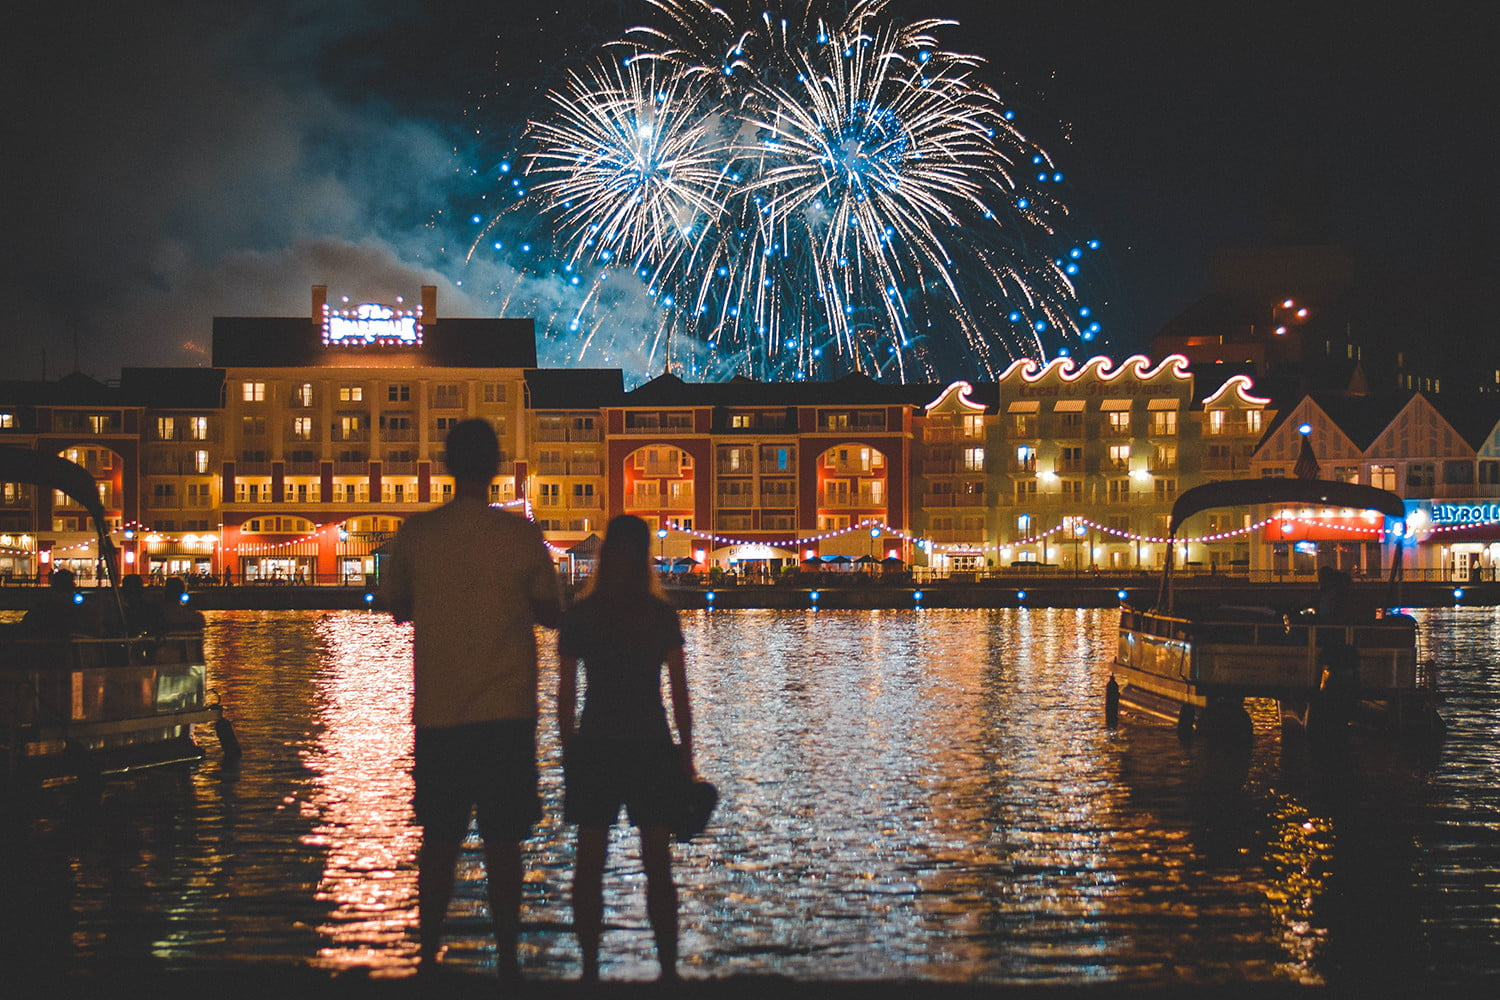 How to Photograph Fireworks photo